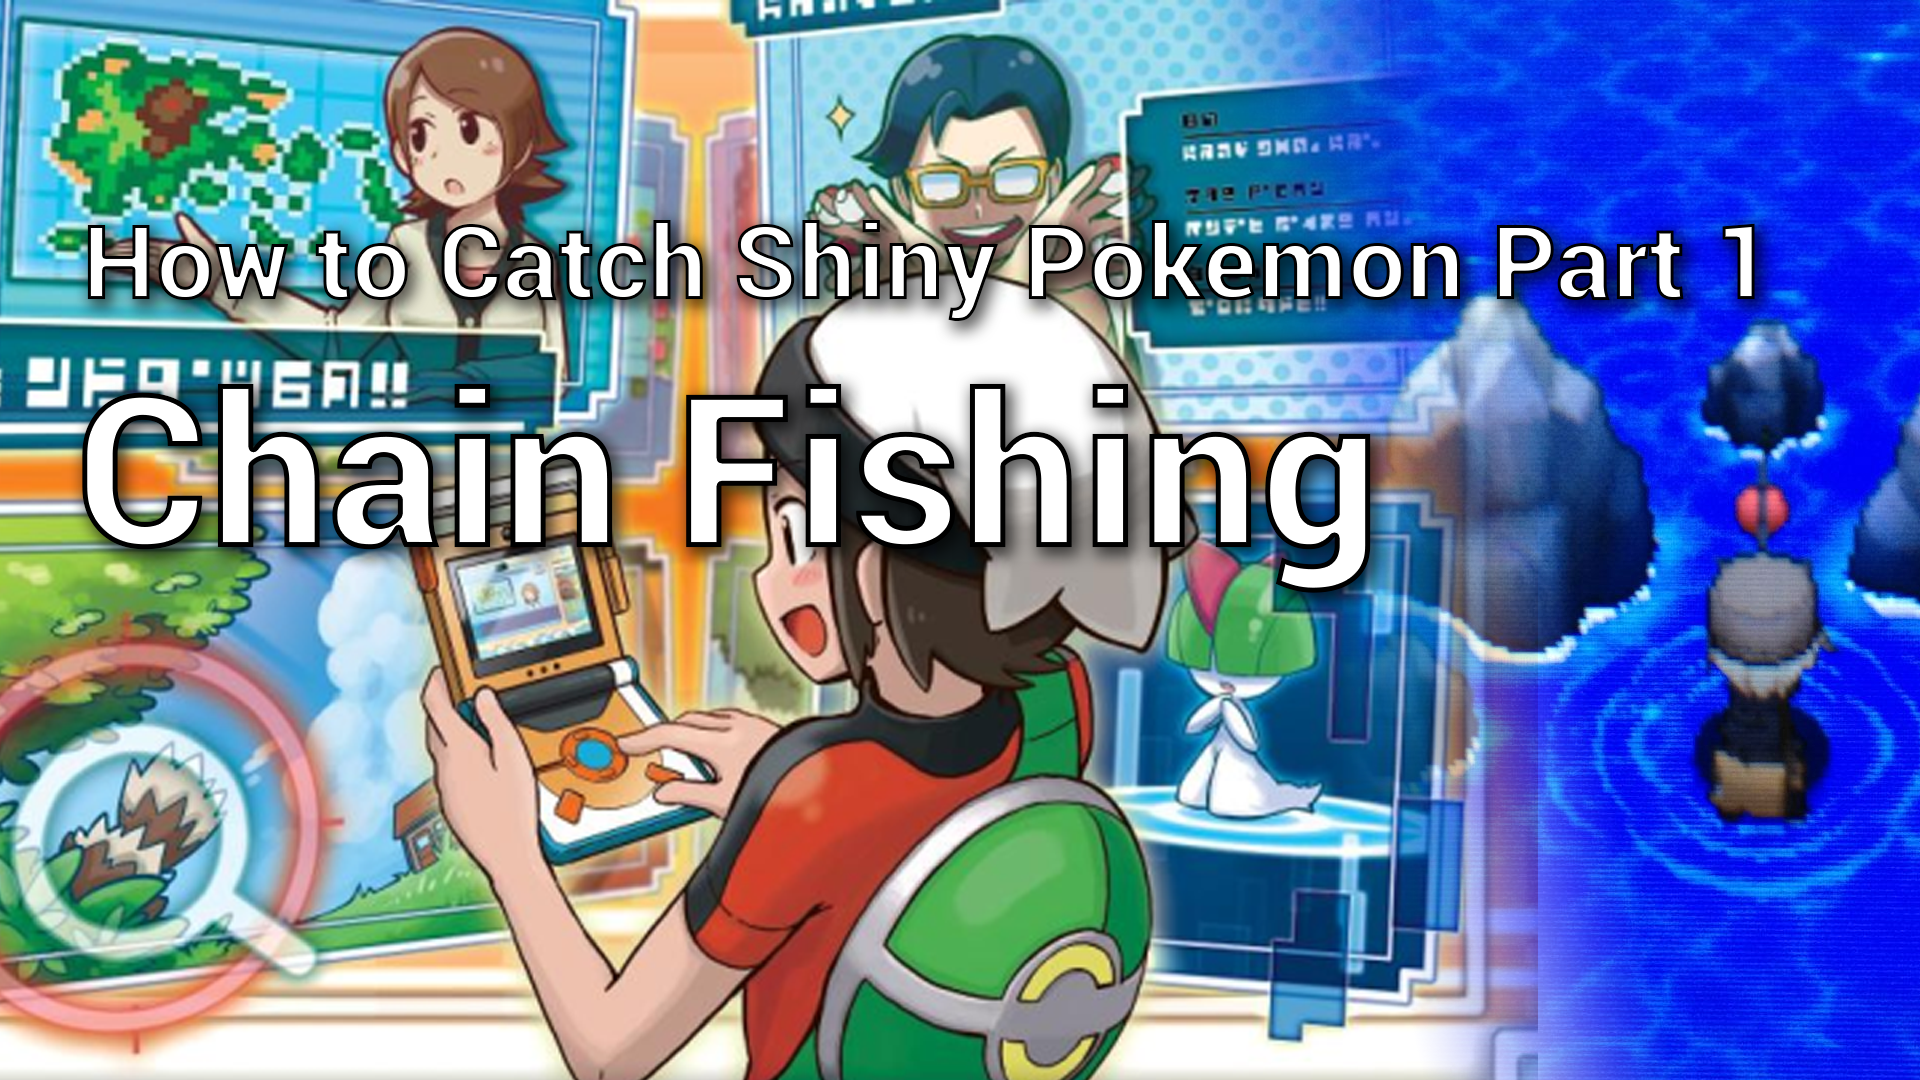 How to Catch Shiny Pokemon - Chain FIshing GUide